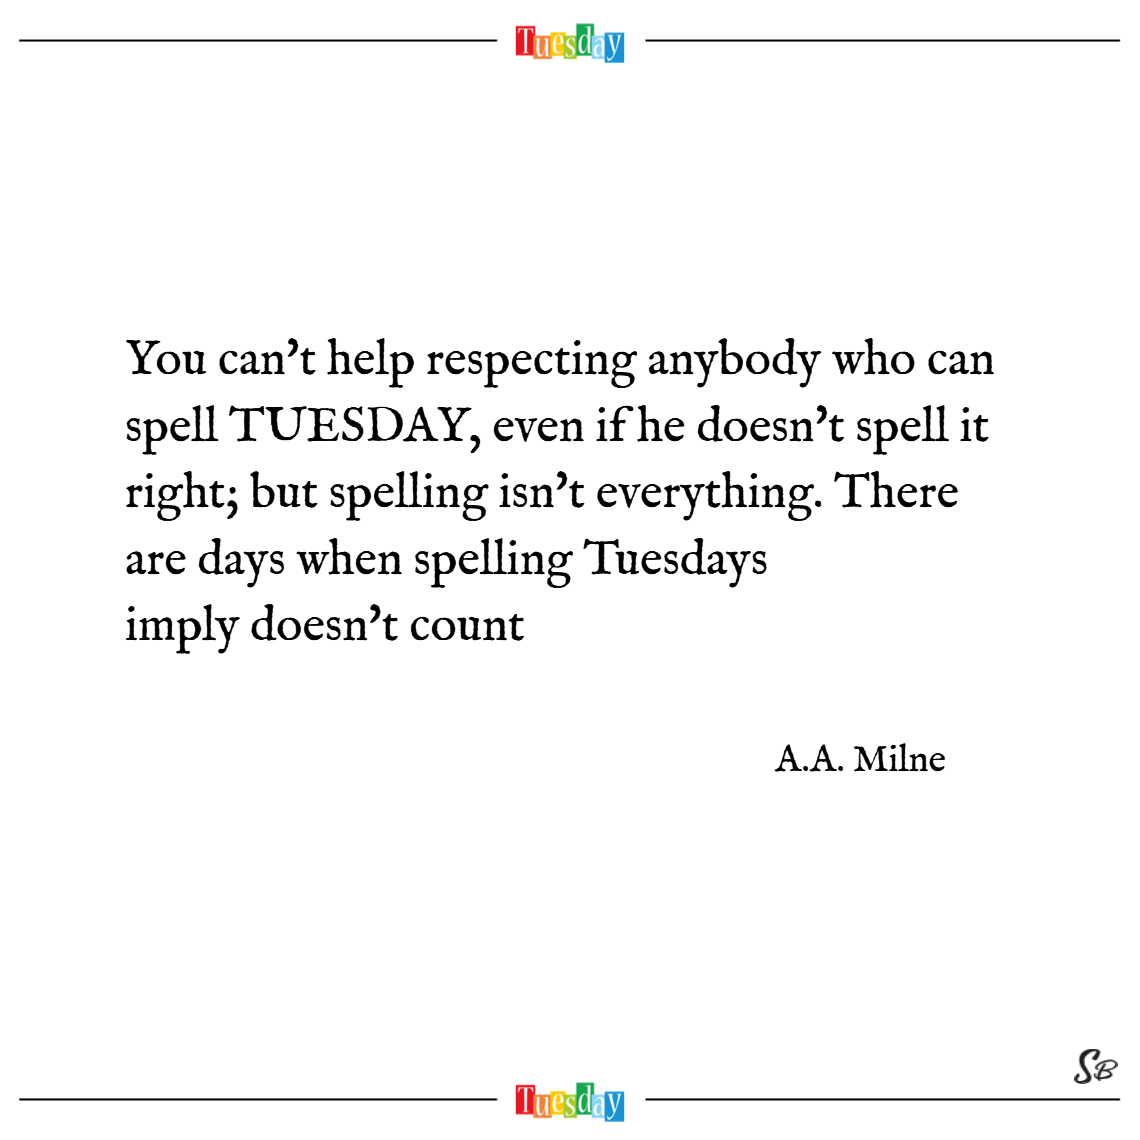 You can't help respecting anybody who can spell tuesday, even if he doesn't spell it right; but spelling isn't everything. there are days when spelling tuesday simply doesn't count. – a. a. milne